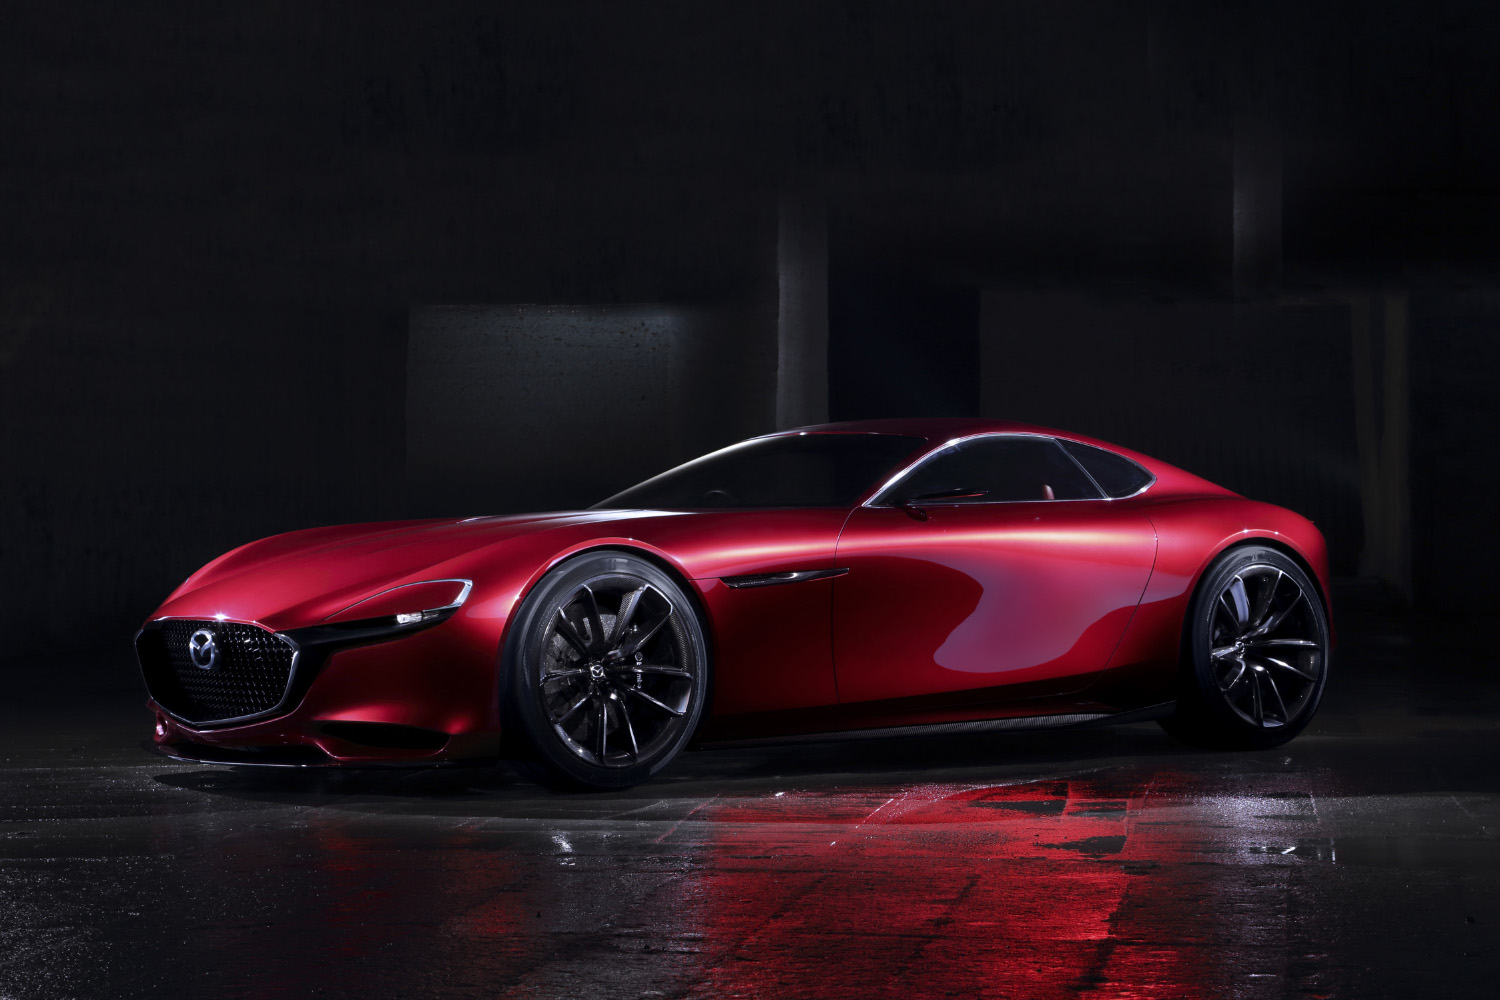 The RX-Vision Concept Brings a New Level of Modern Design to Mazda